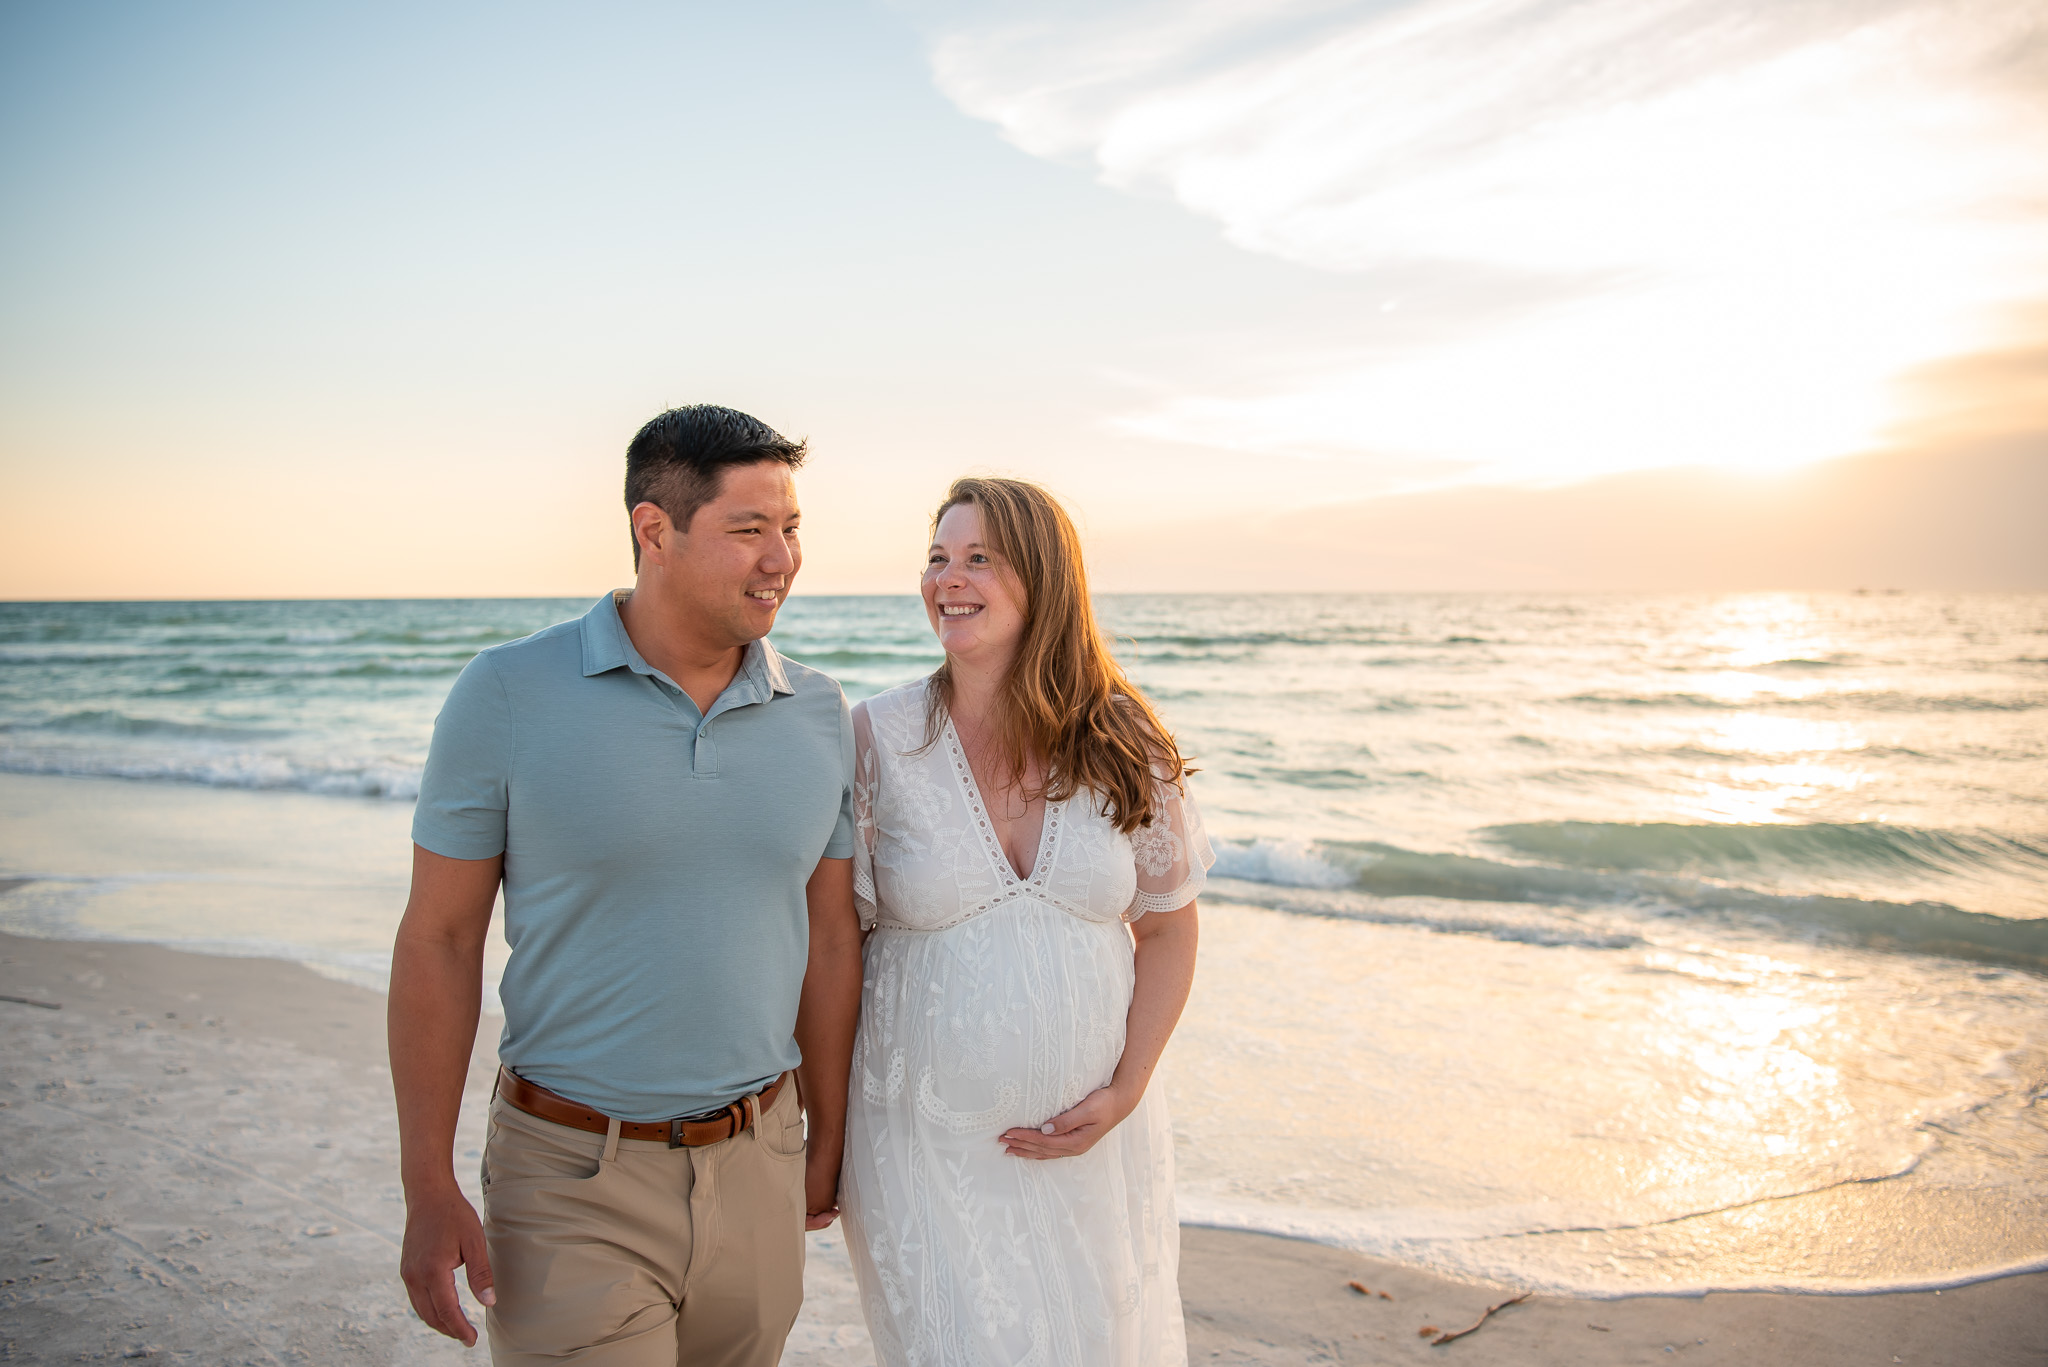 Couple on the beach for their Maternity session